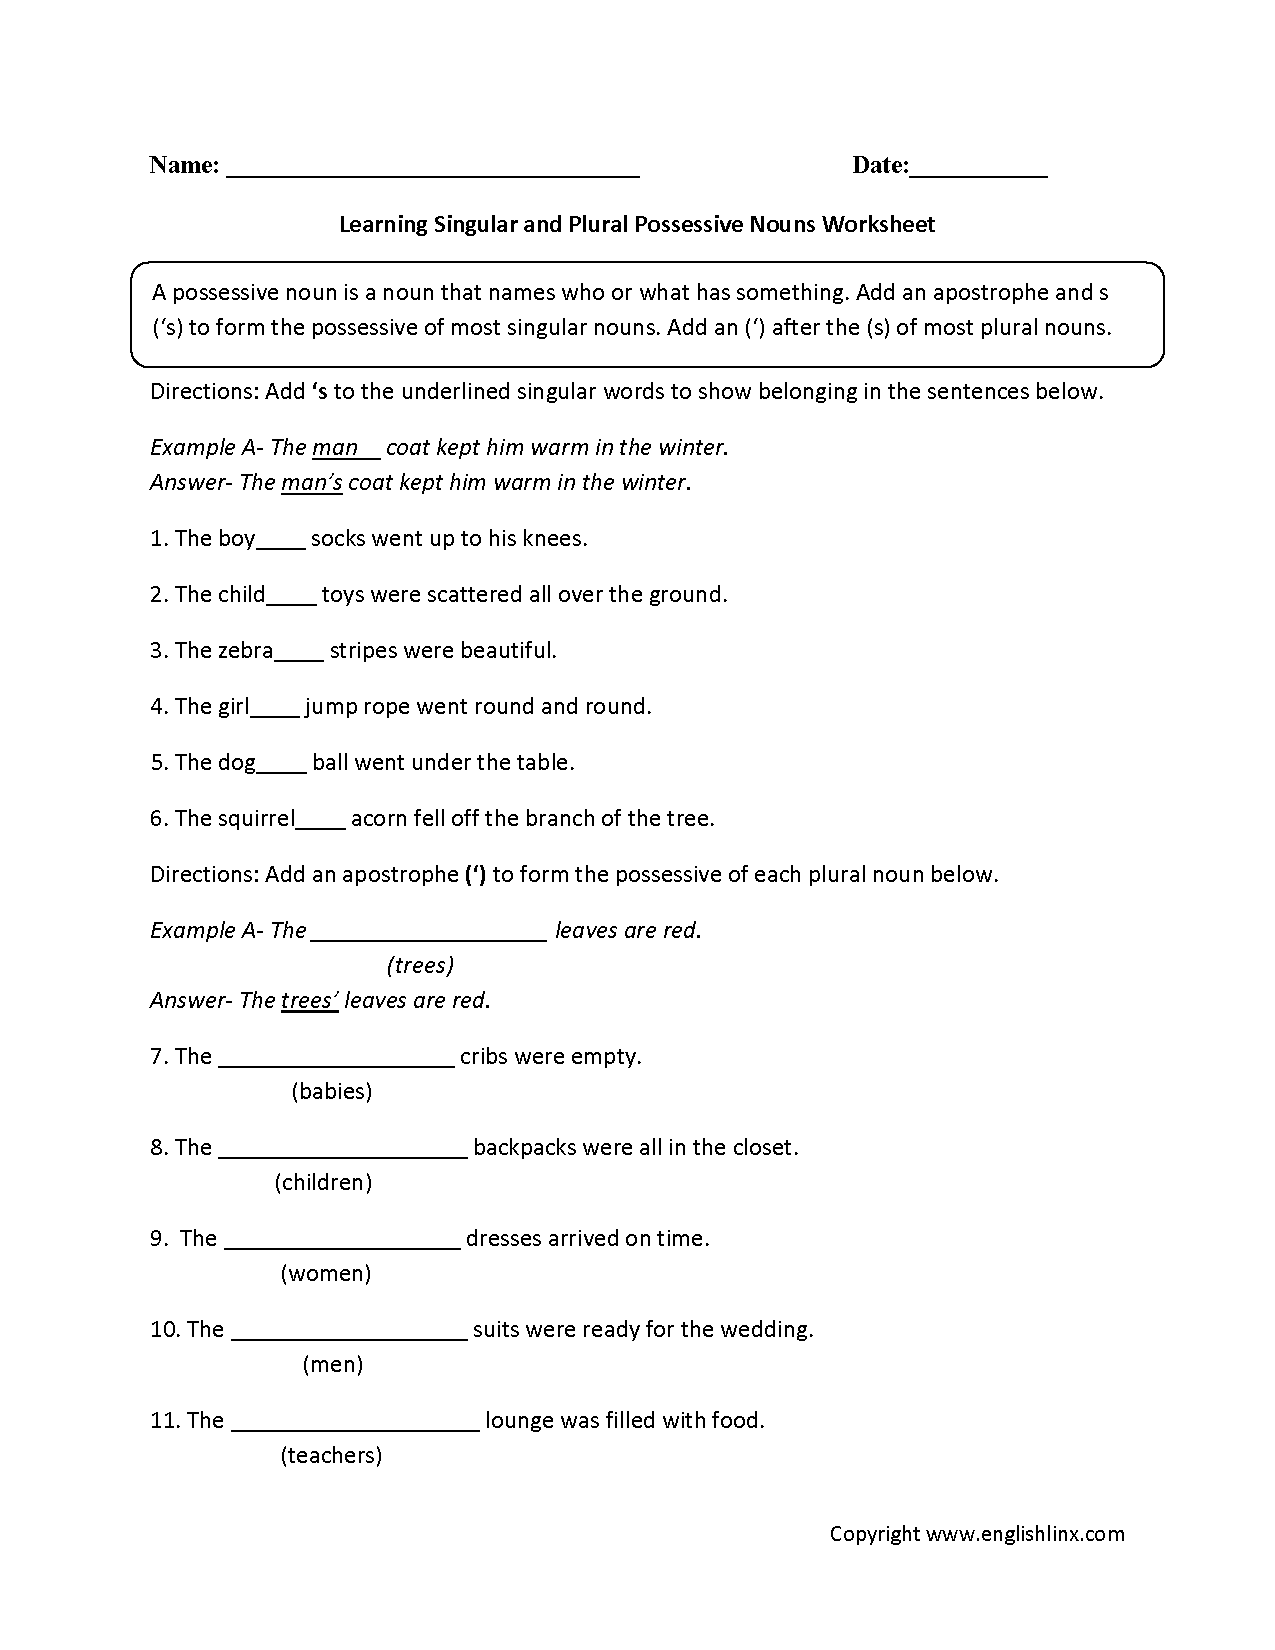 Worksheets 9th Grade English Worksheets 9th grade grammar worksheets free library download practice for 7th english for